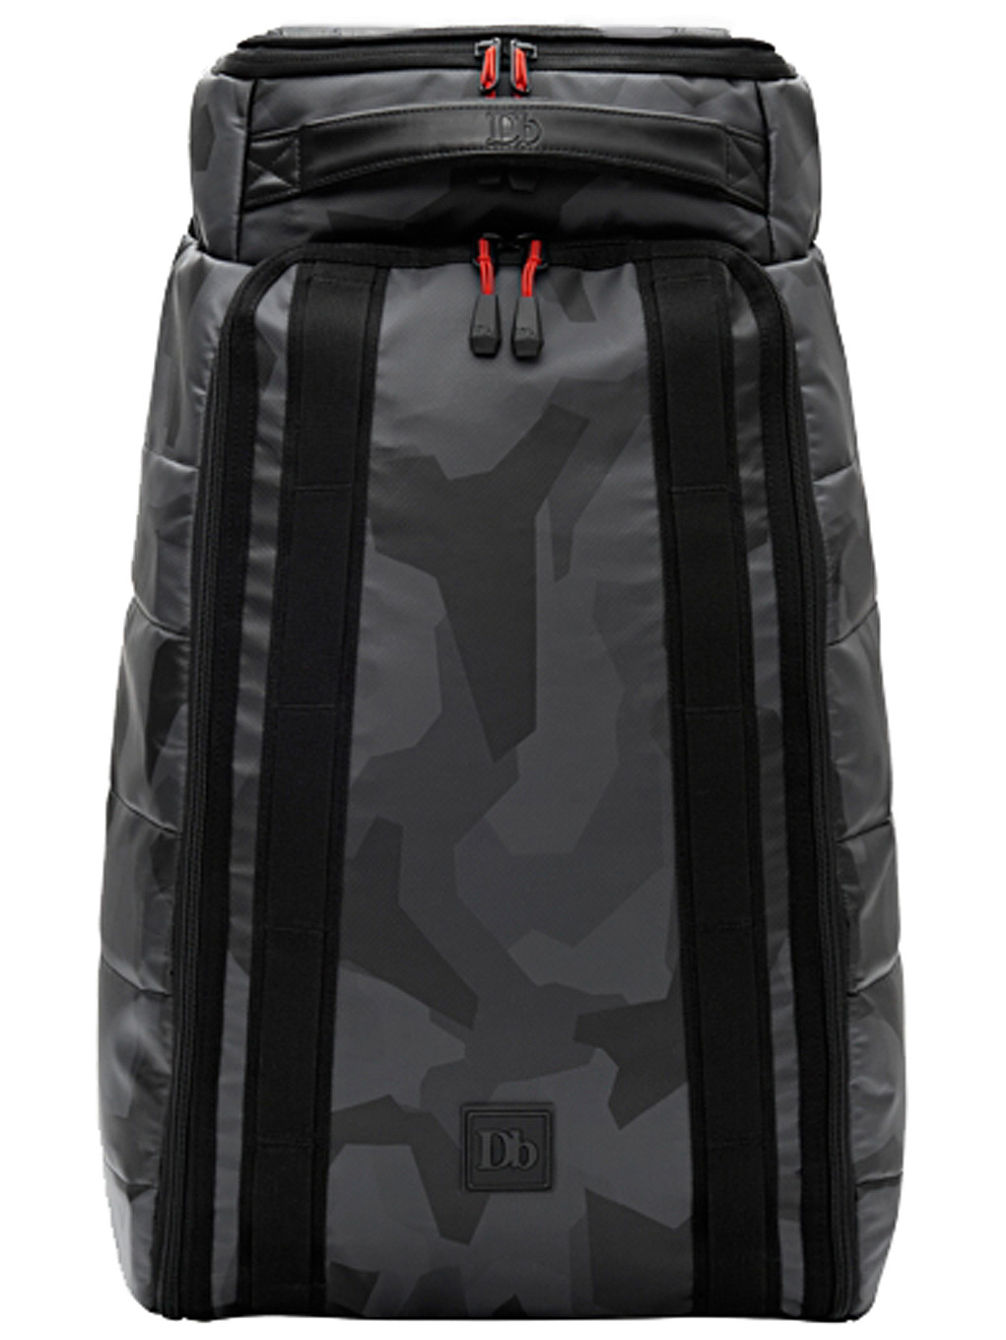 The Hugger 30L Black Camo Rucksack